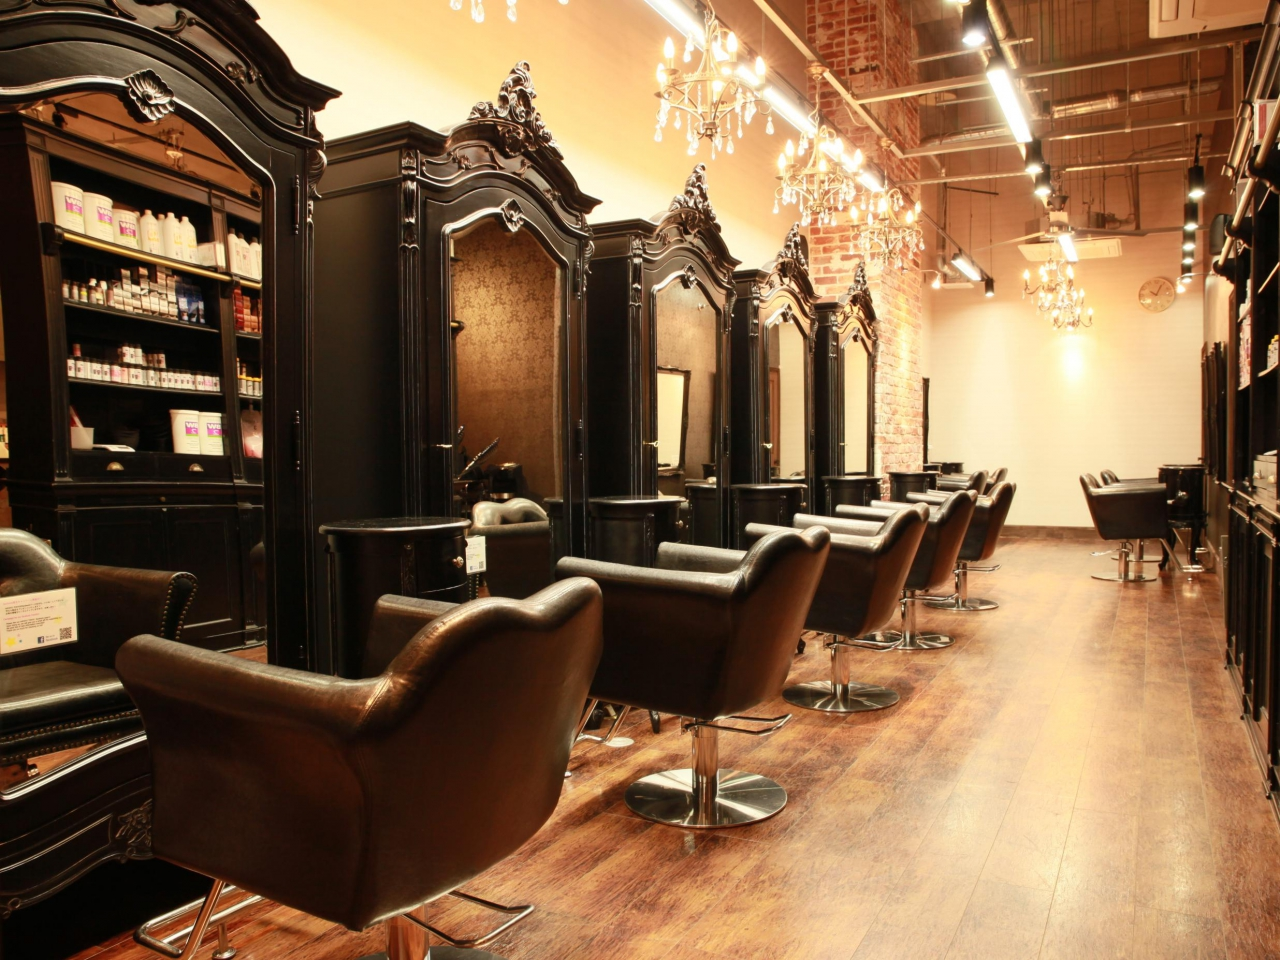 Taichi suzuki hair stylist good news to share for 88 beauty salon vancouver